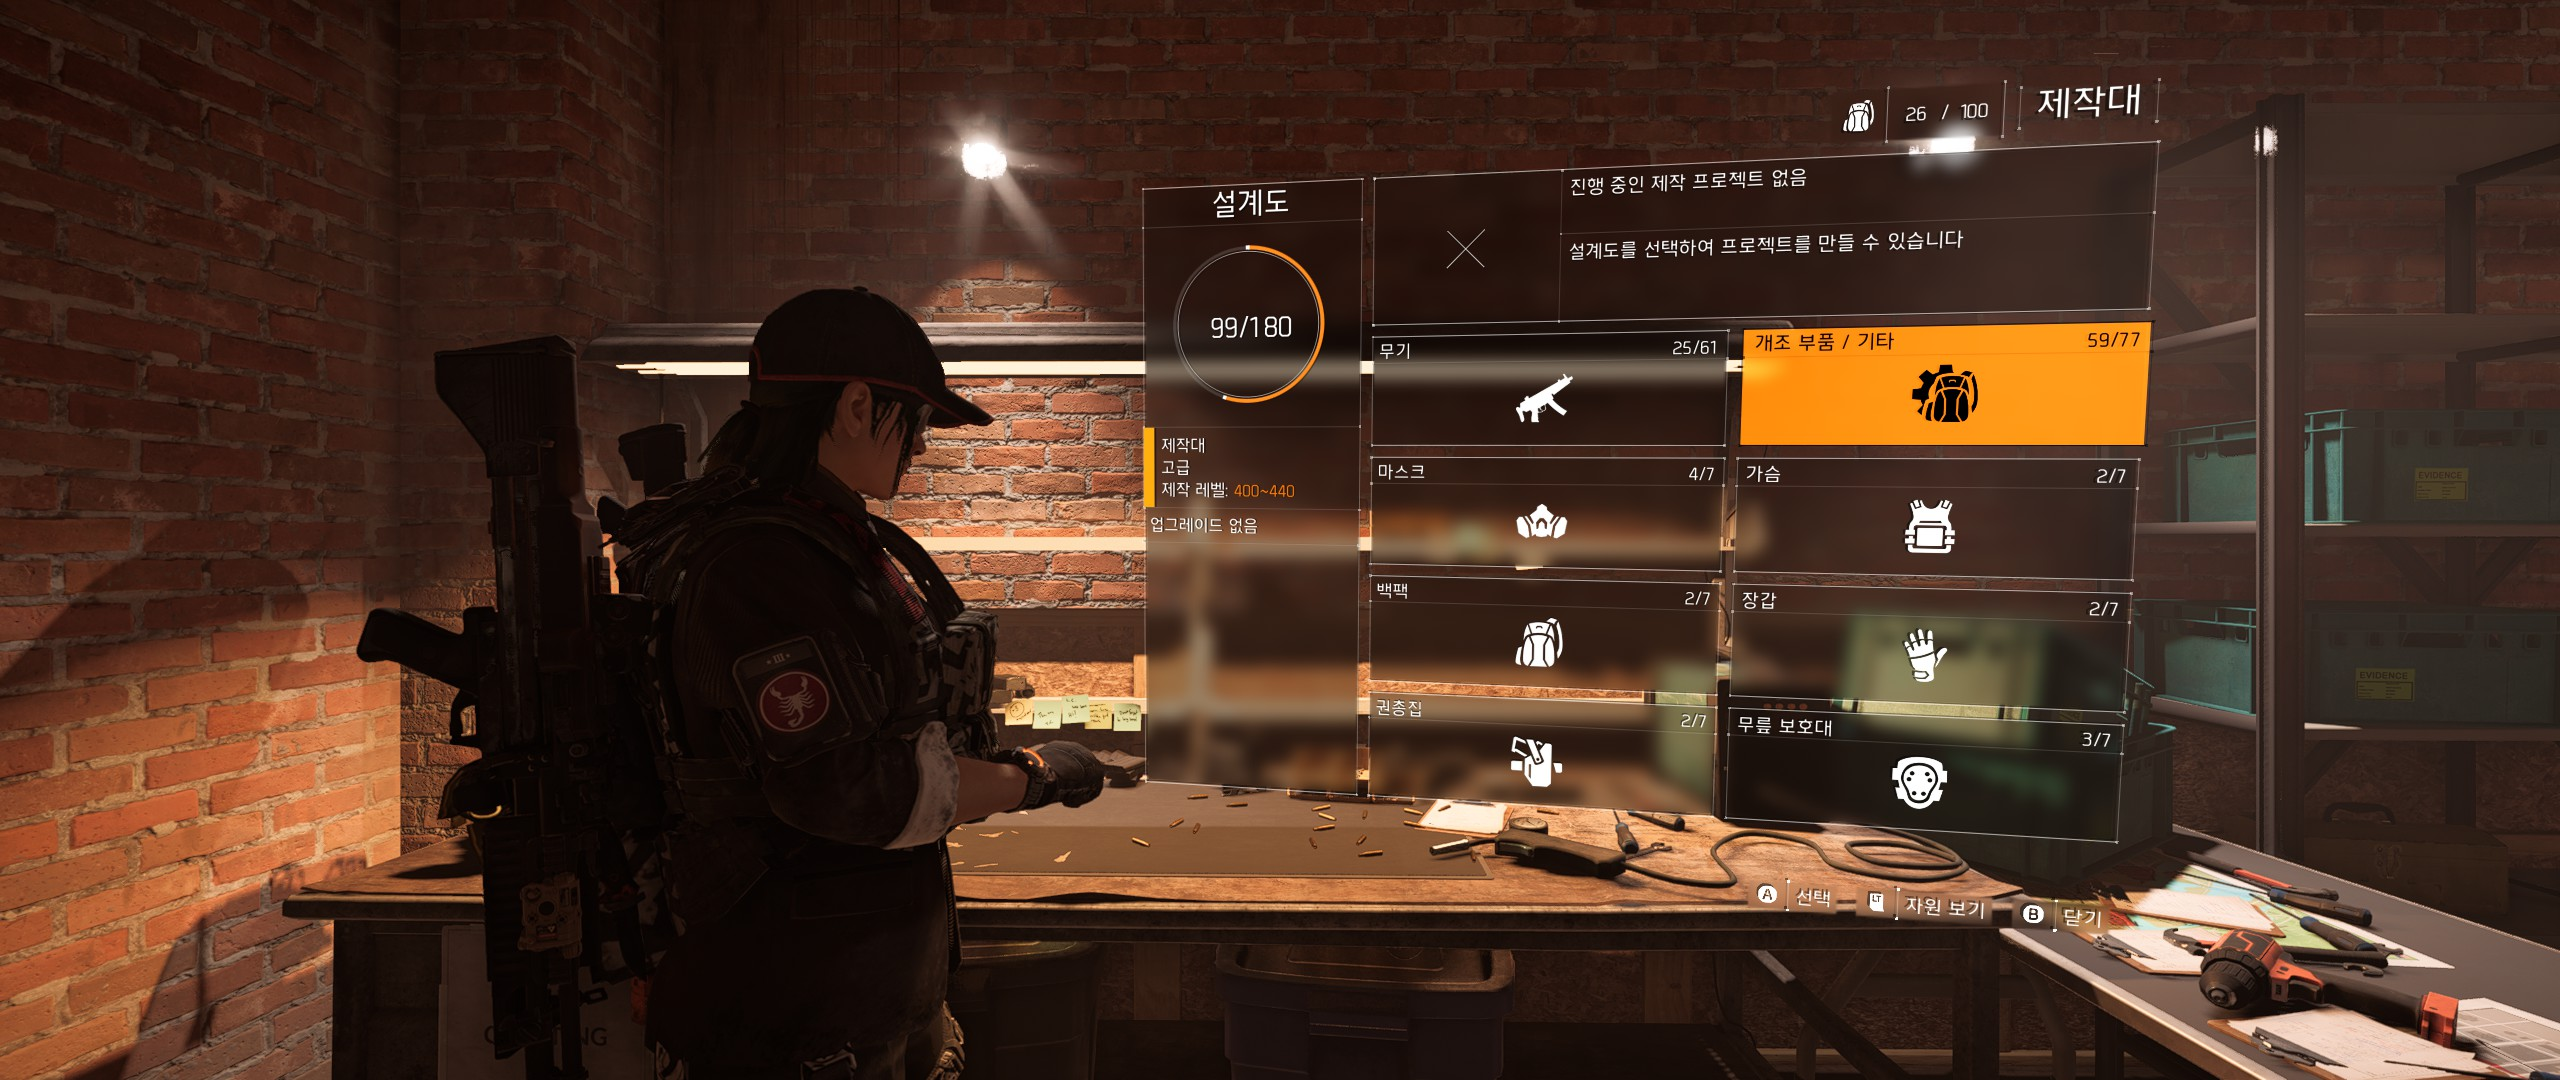 Tom Clancy's The Division® 22019-4-1-18-47-22.jpg